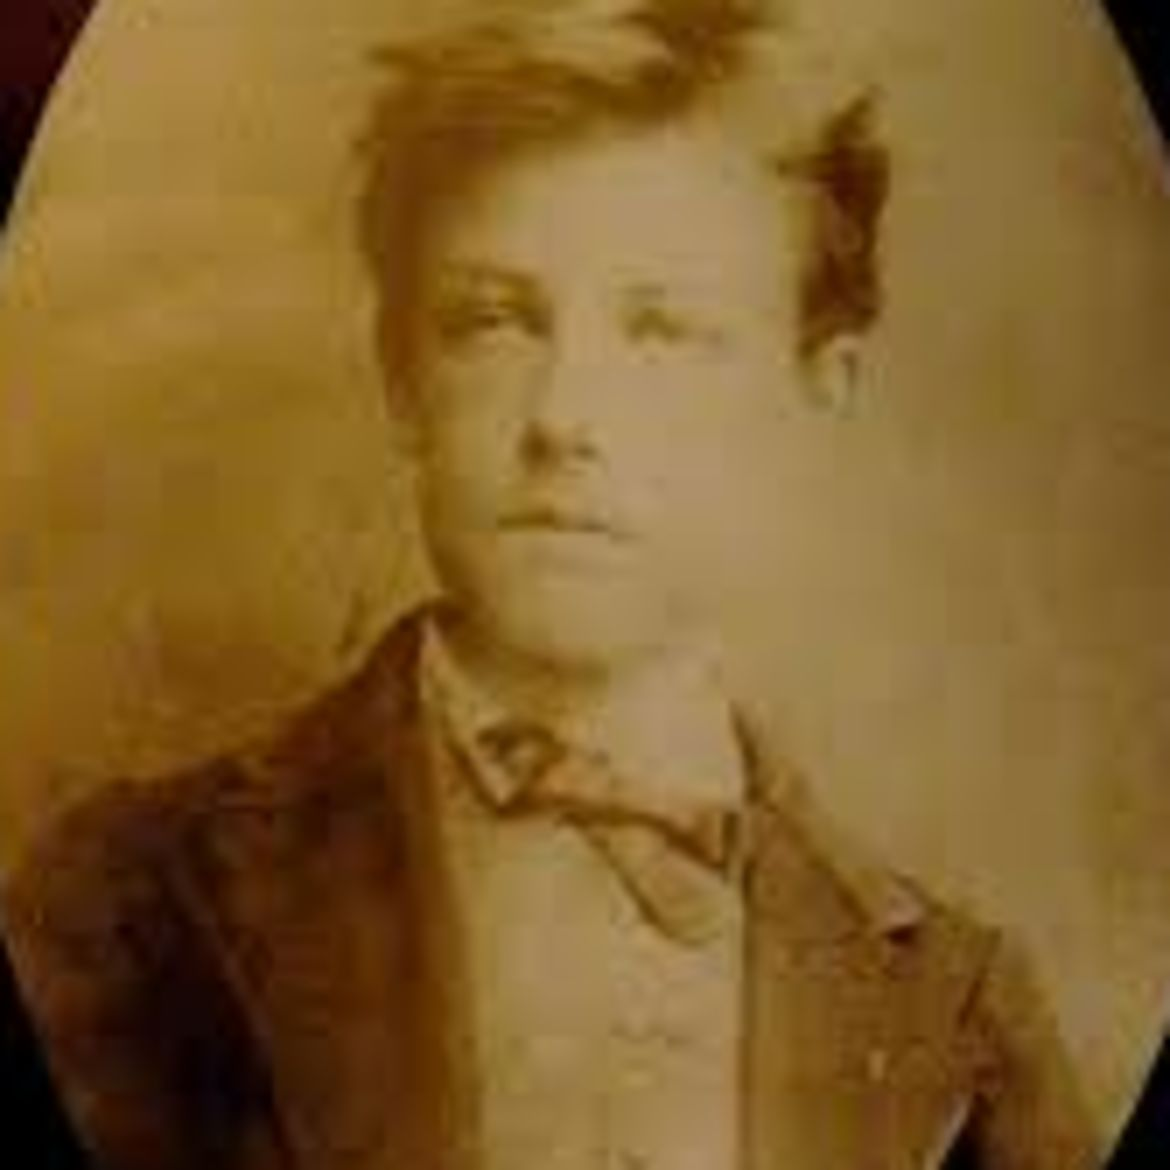 Cover Photo: With Arthur Rimbaud at the Chamber of Commerce by Con Chapman